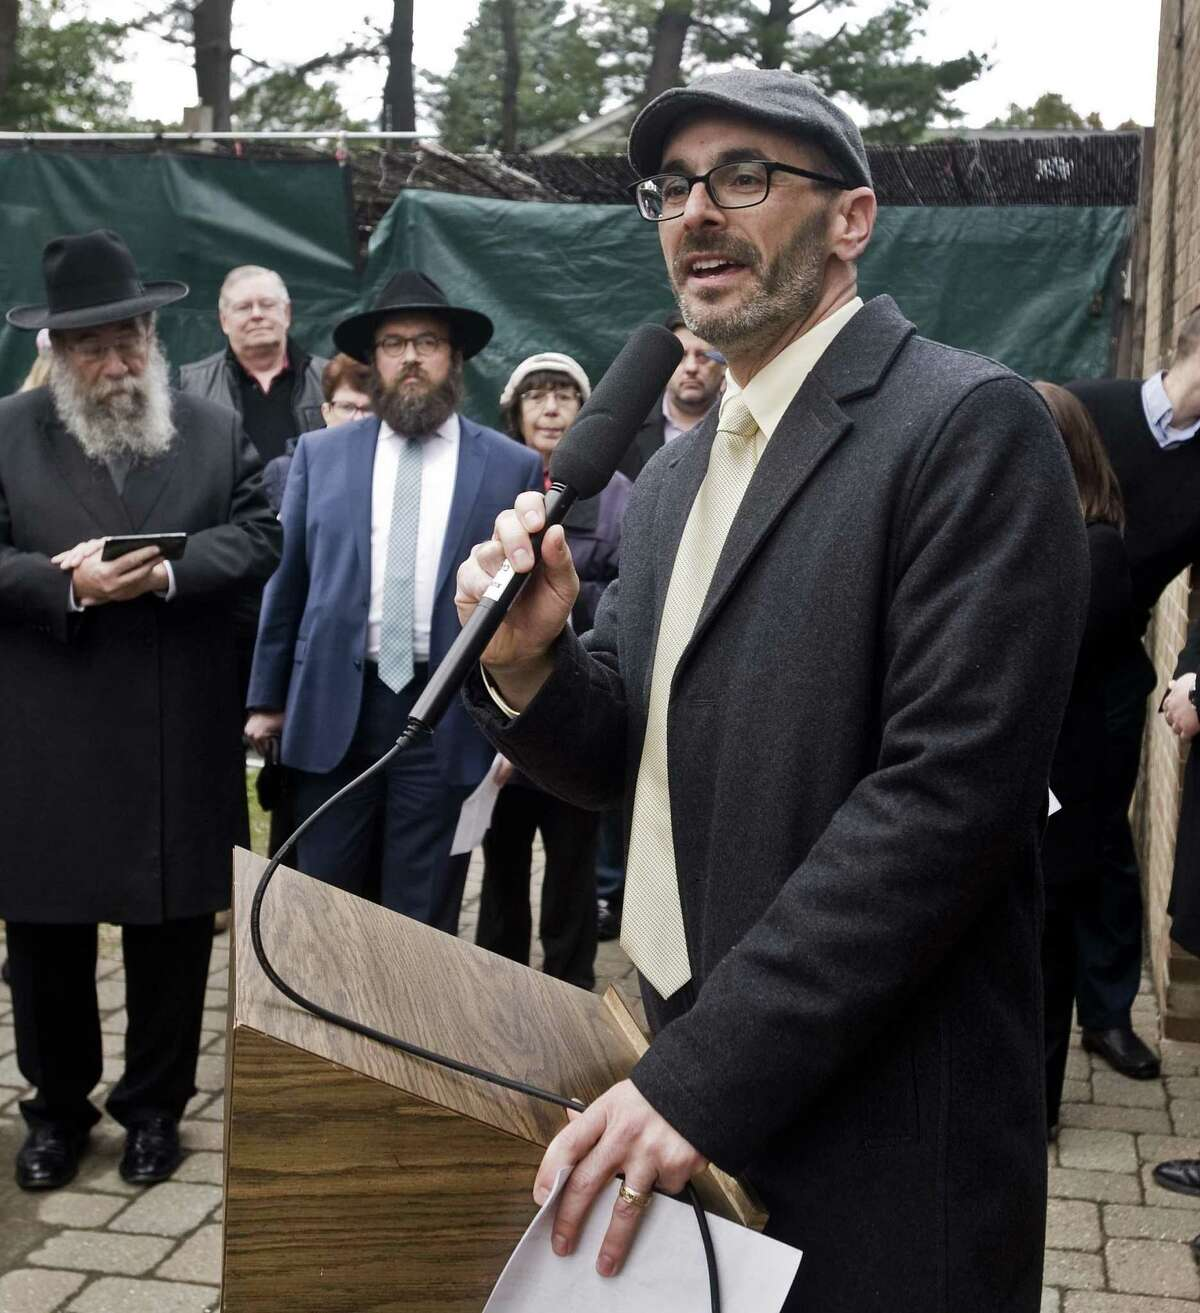 Rabbi Jay Tel Rav of Temple Sinai in Stramford, speaks to the gathering during a vigil at Agudath Sholom in Stamford, for the loss of life at the Tree of Life synagogue in Pittsburgh. Sunday, Oct. 28, 2018